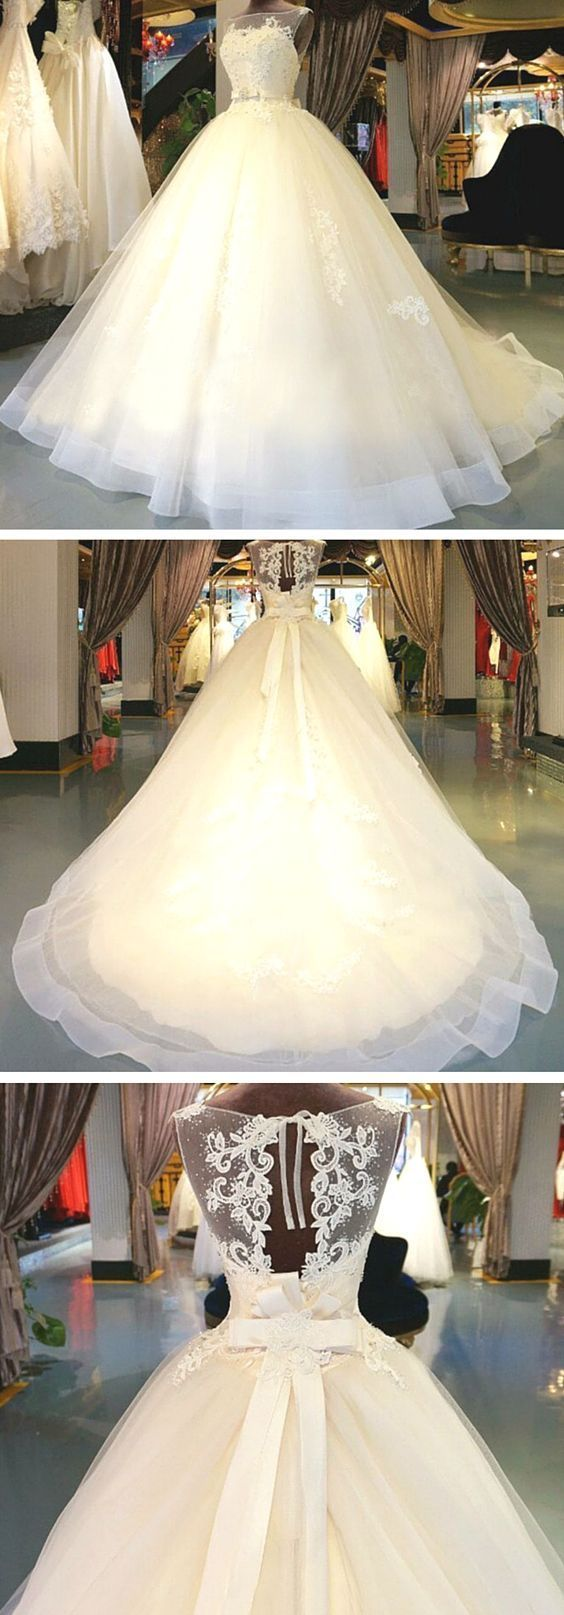 best images about marriage on pinterest sweetheart wedding